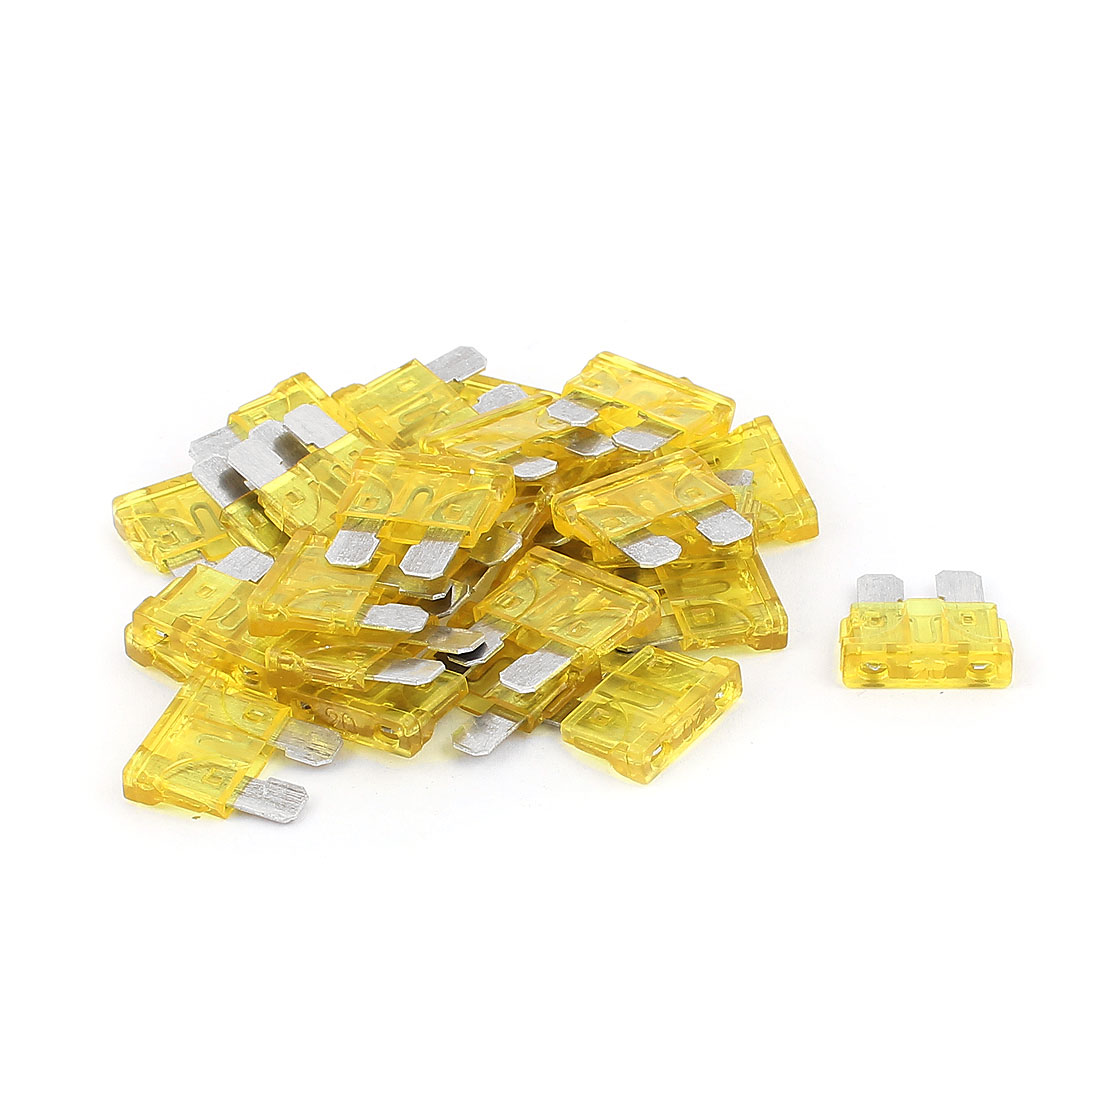 30pcs Yellow 20A Plastic Case Blade Fuse for Auto Car Truck Motorcycle SUV